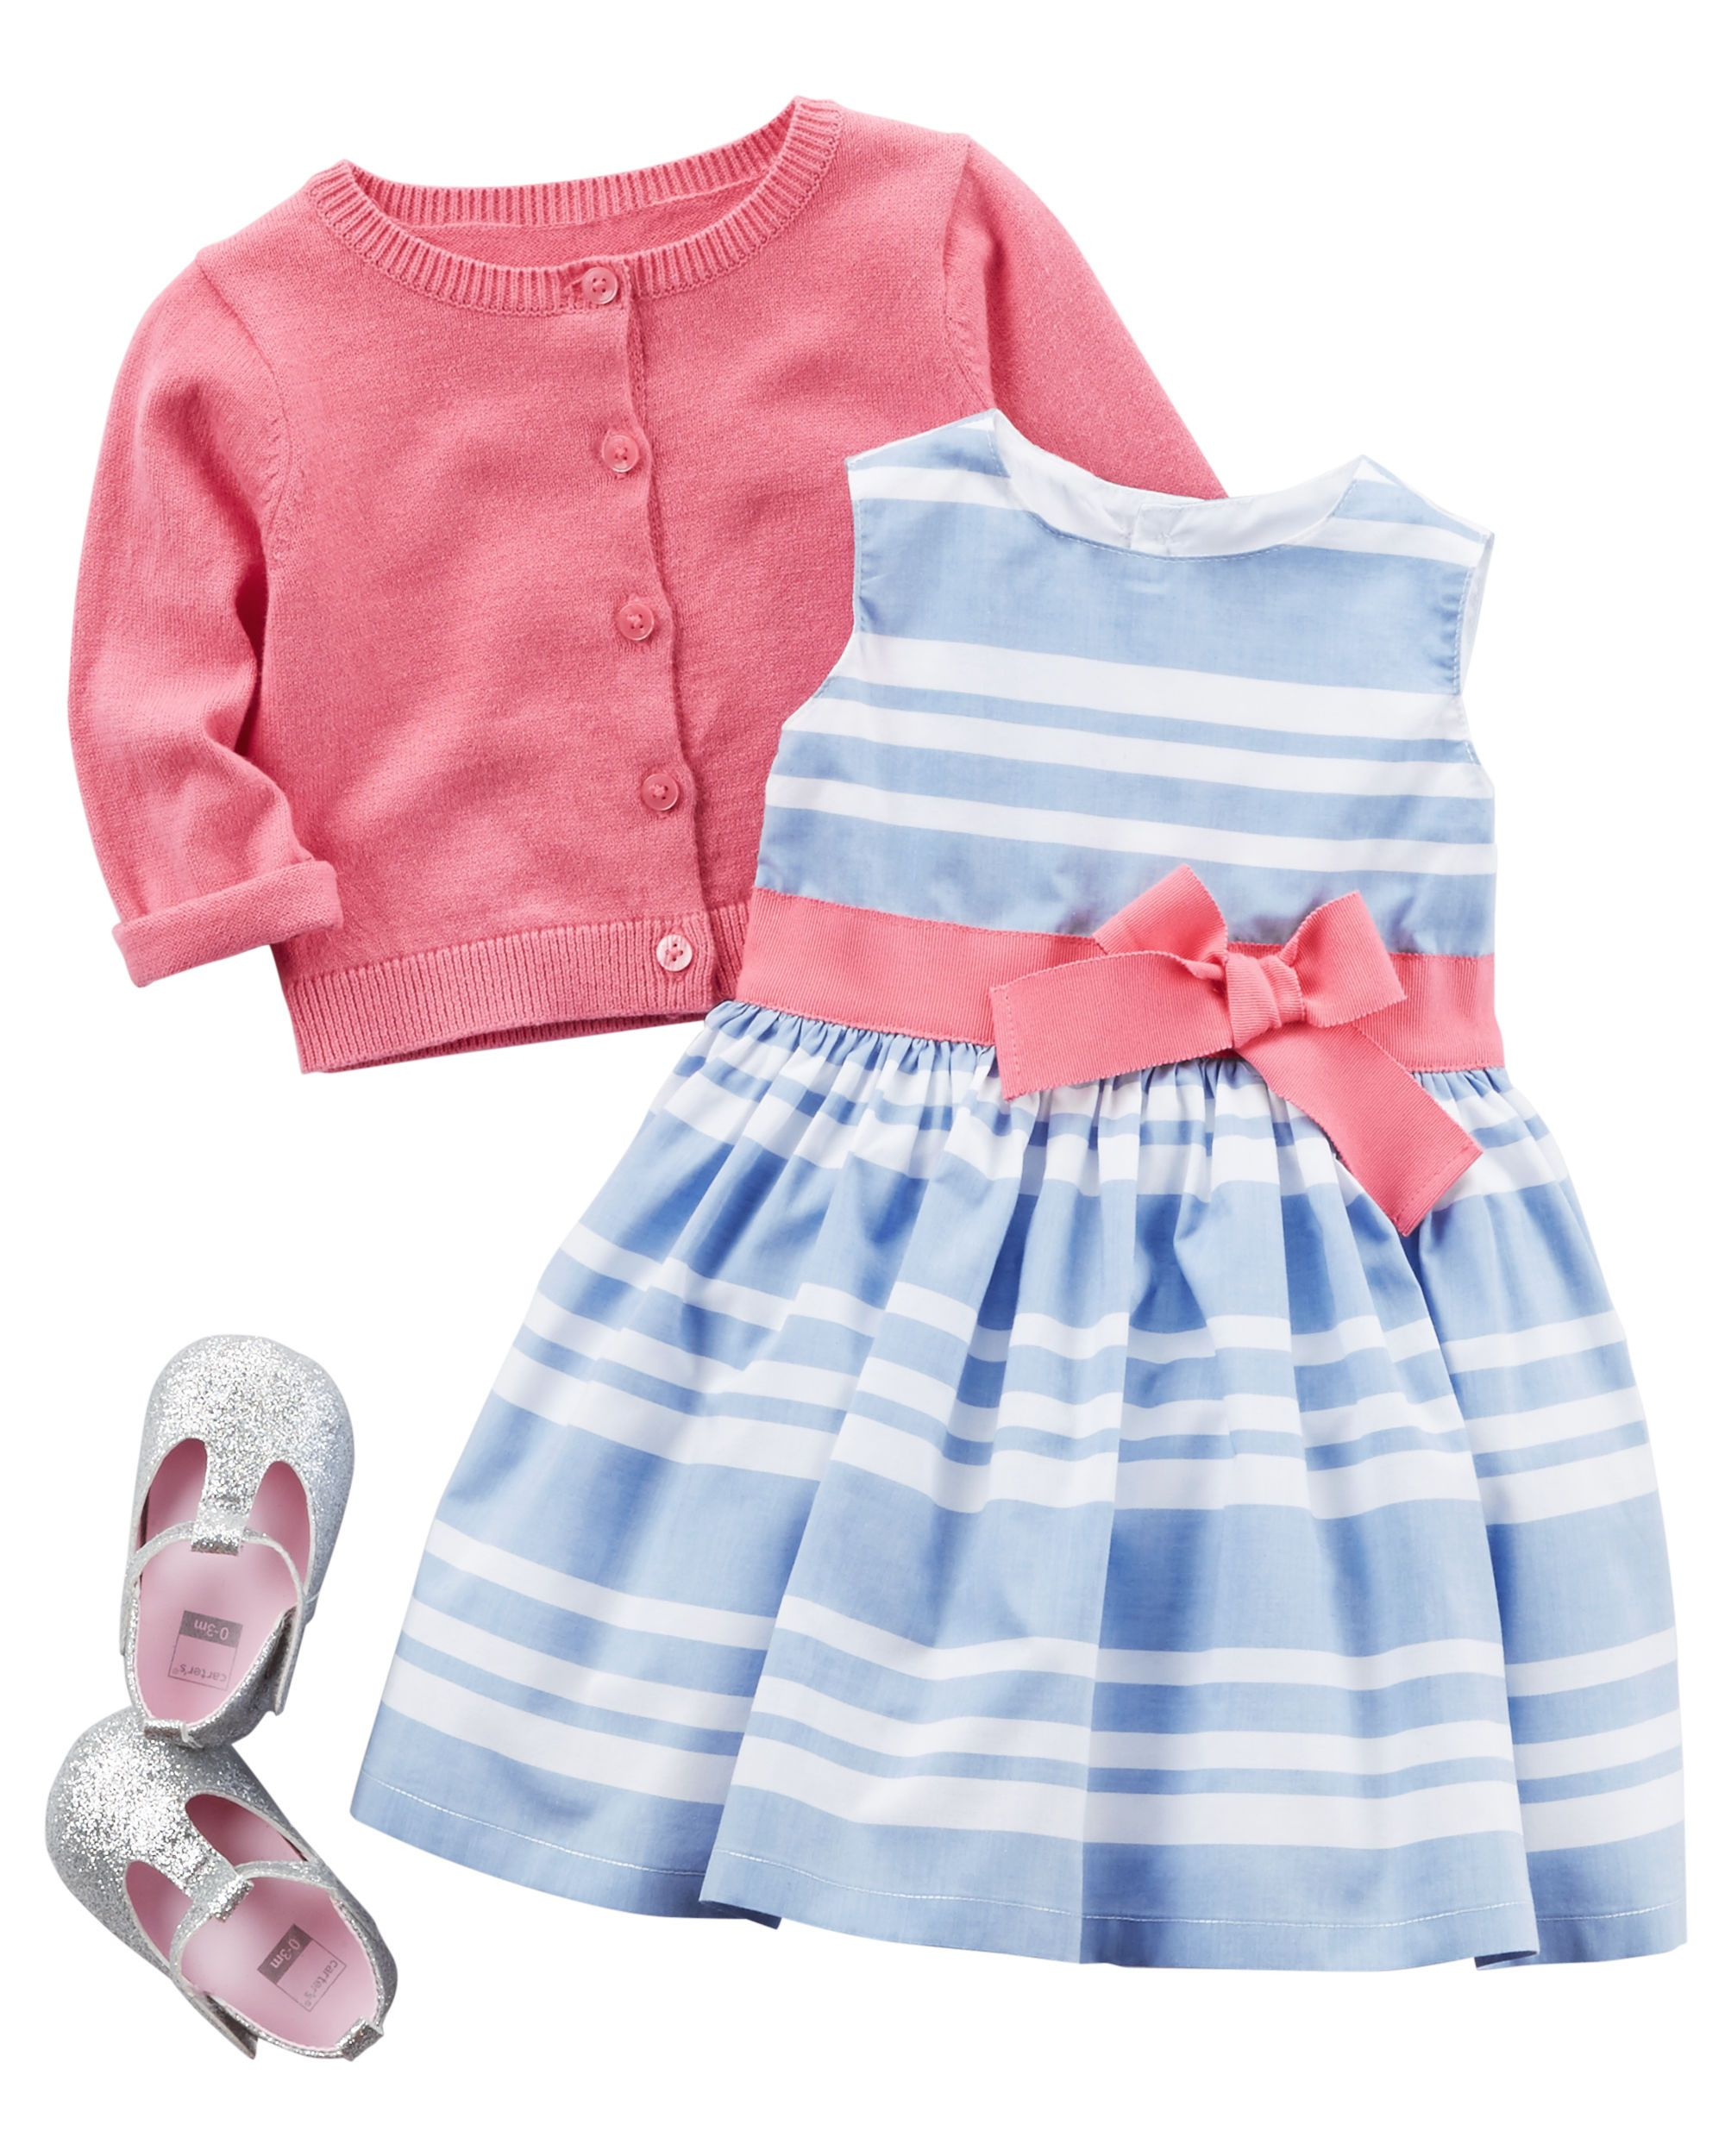 Baby Girl CARDEC11S17 Carters carters Pinterest